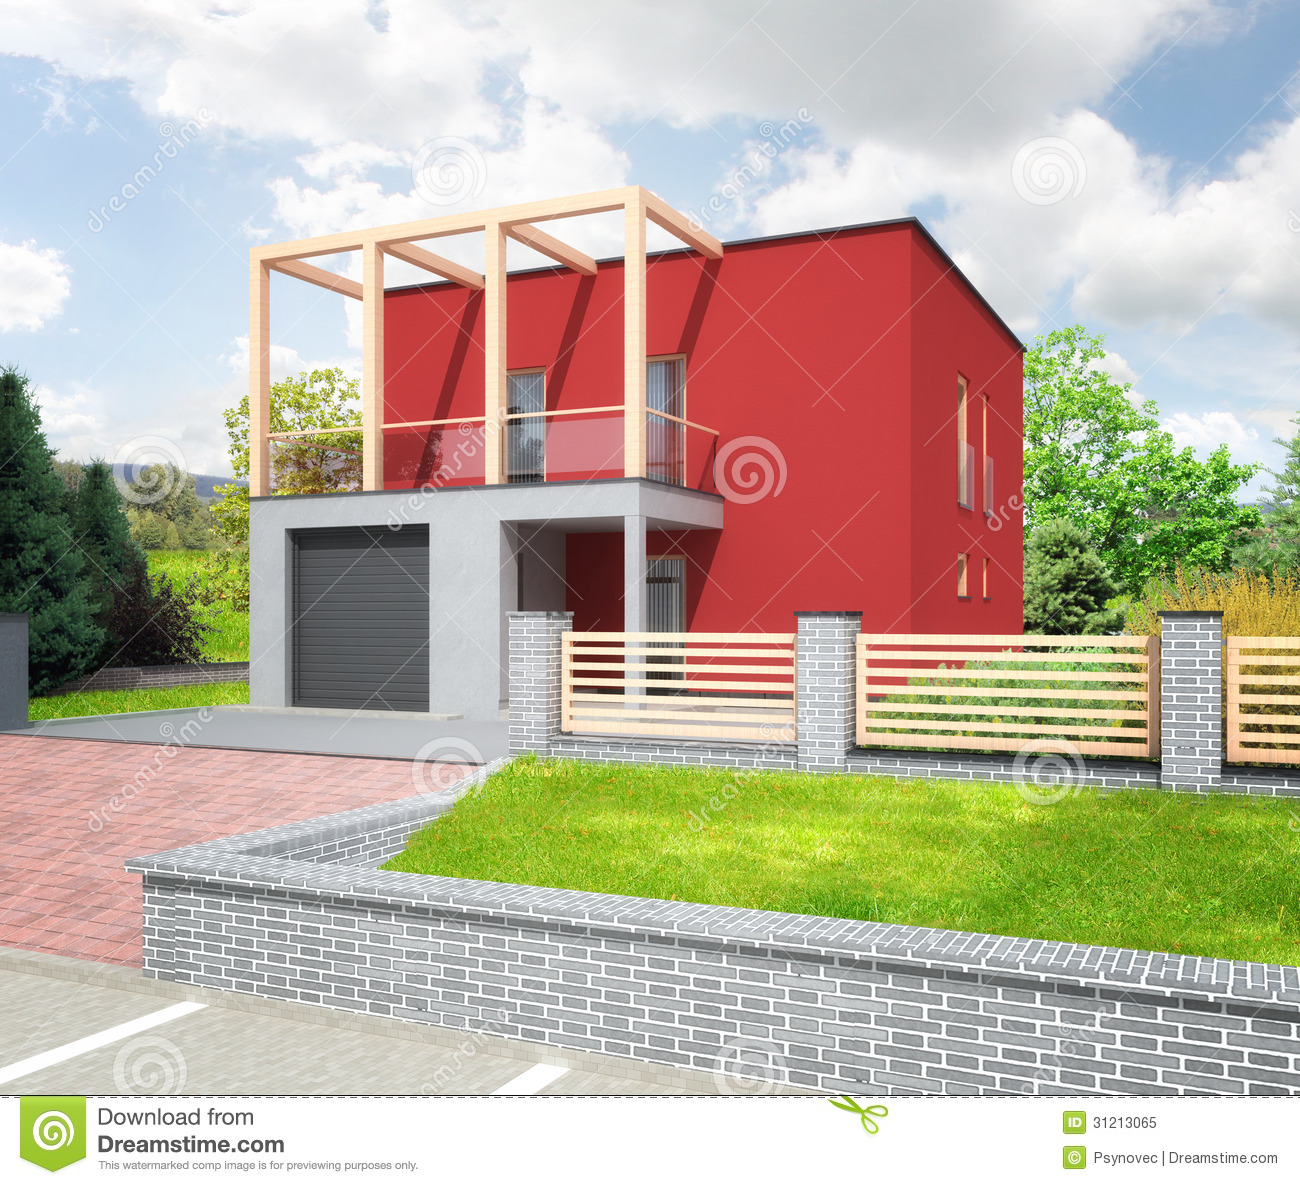 Modern House Red Roof: New Red Modern House Stock Illustration. Image Of